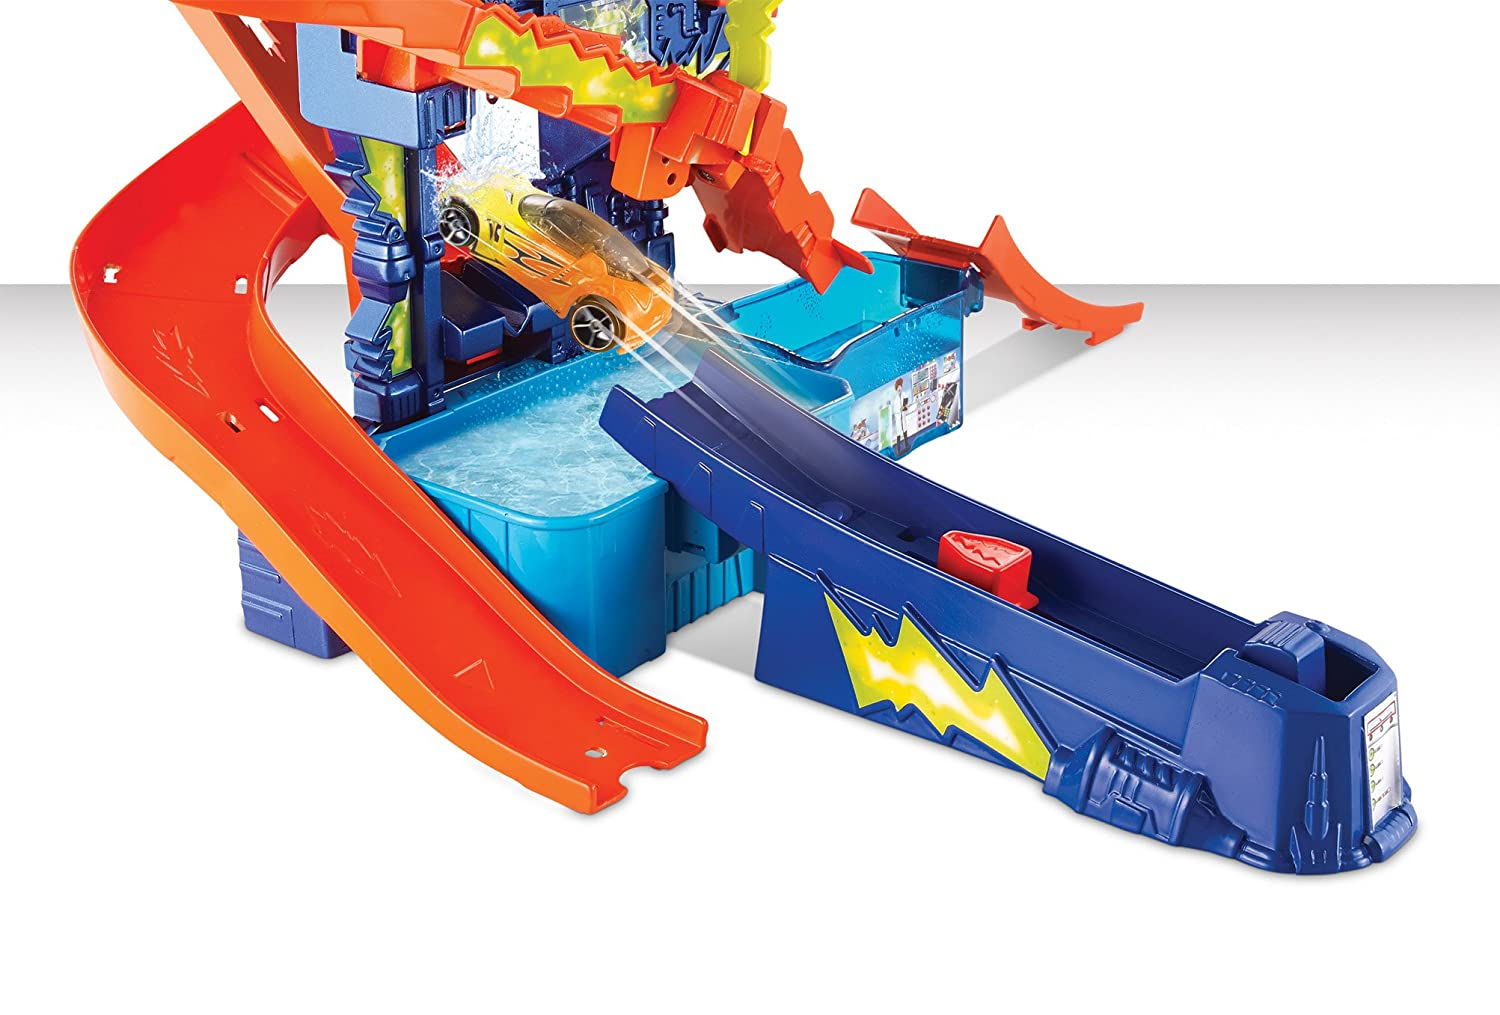 Online color wheel games - Buy Hot Wheels Shifters Color Splash Science Lab Playset Multi Color Online At Low Prices In India Amazon In